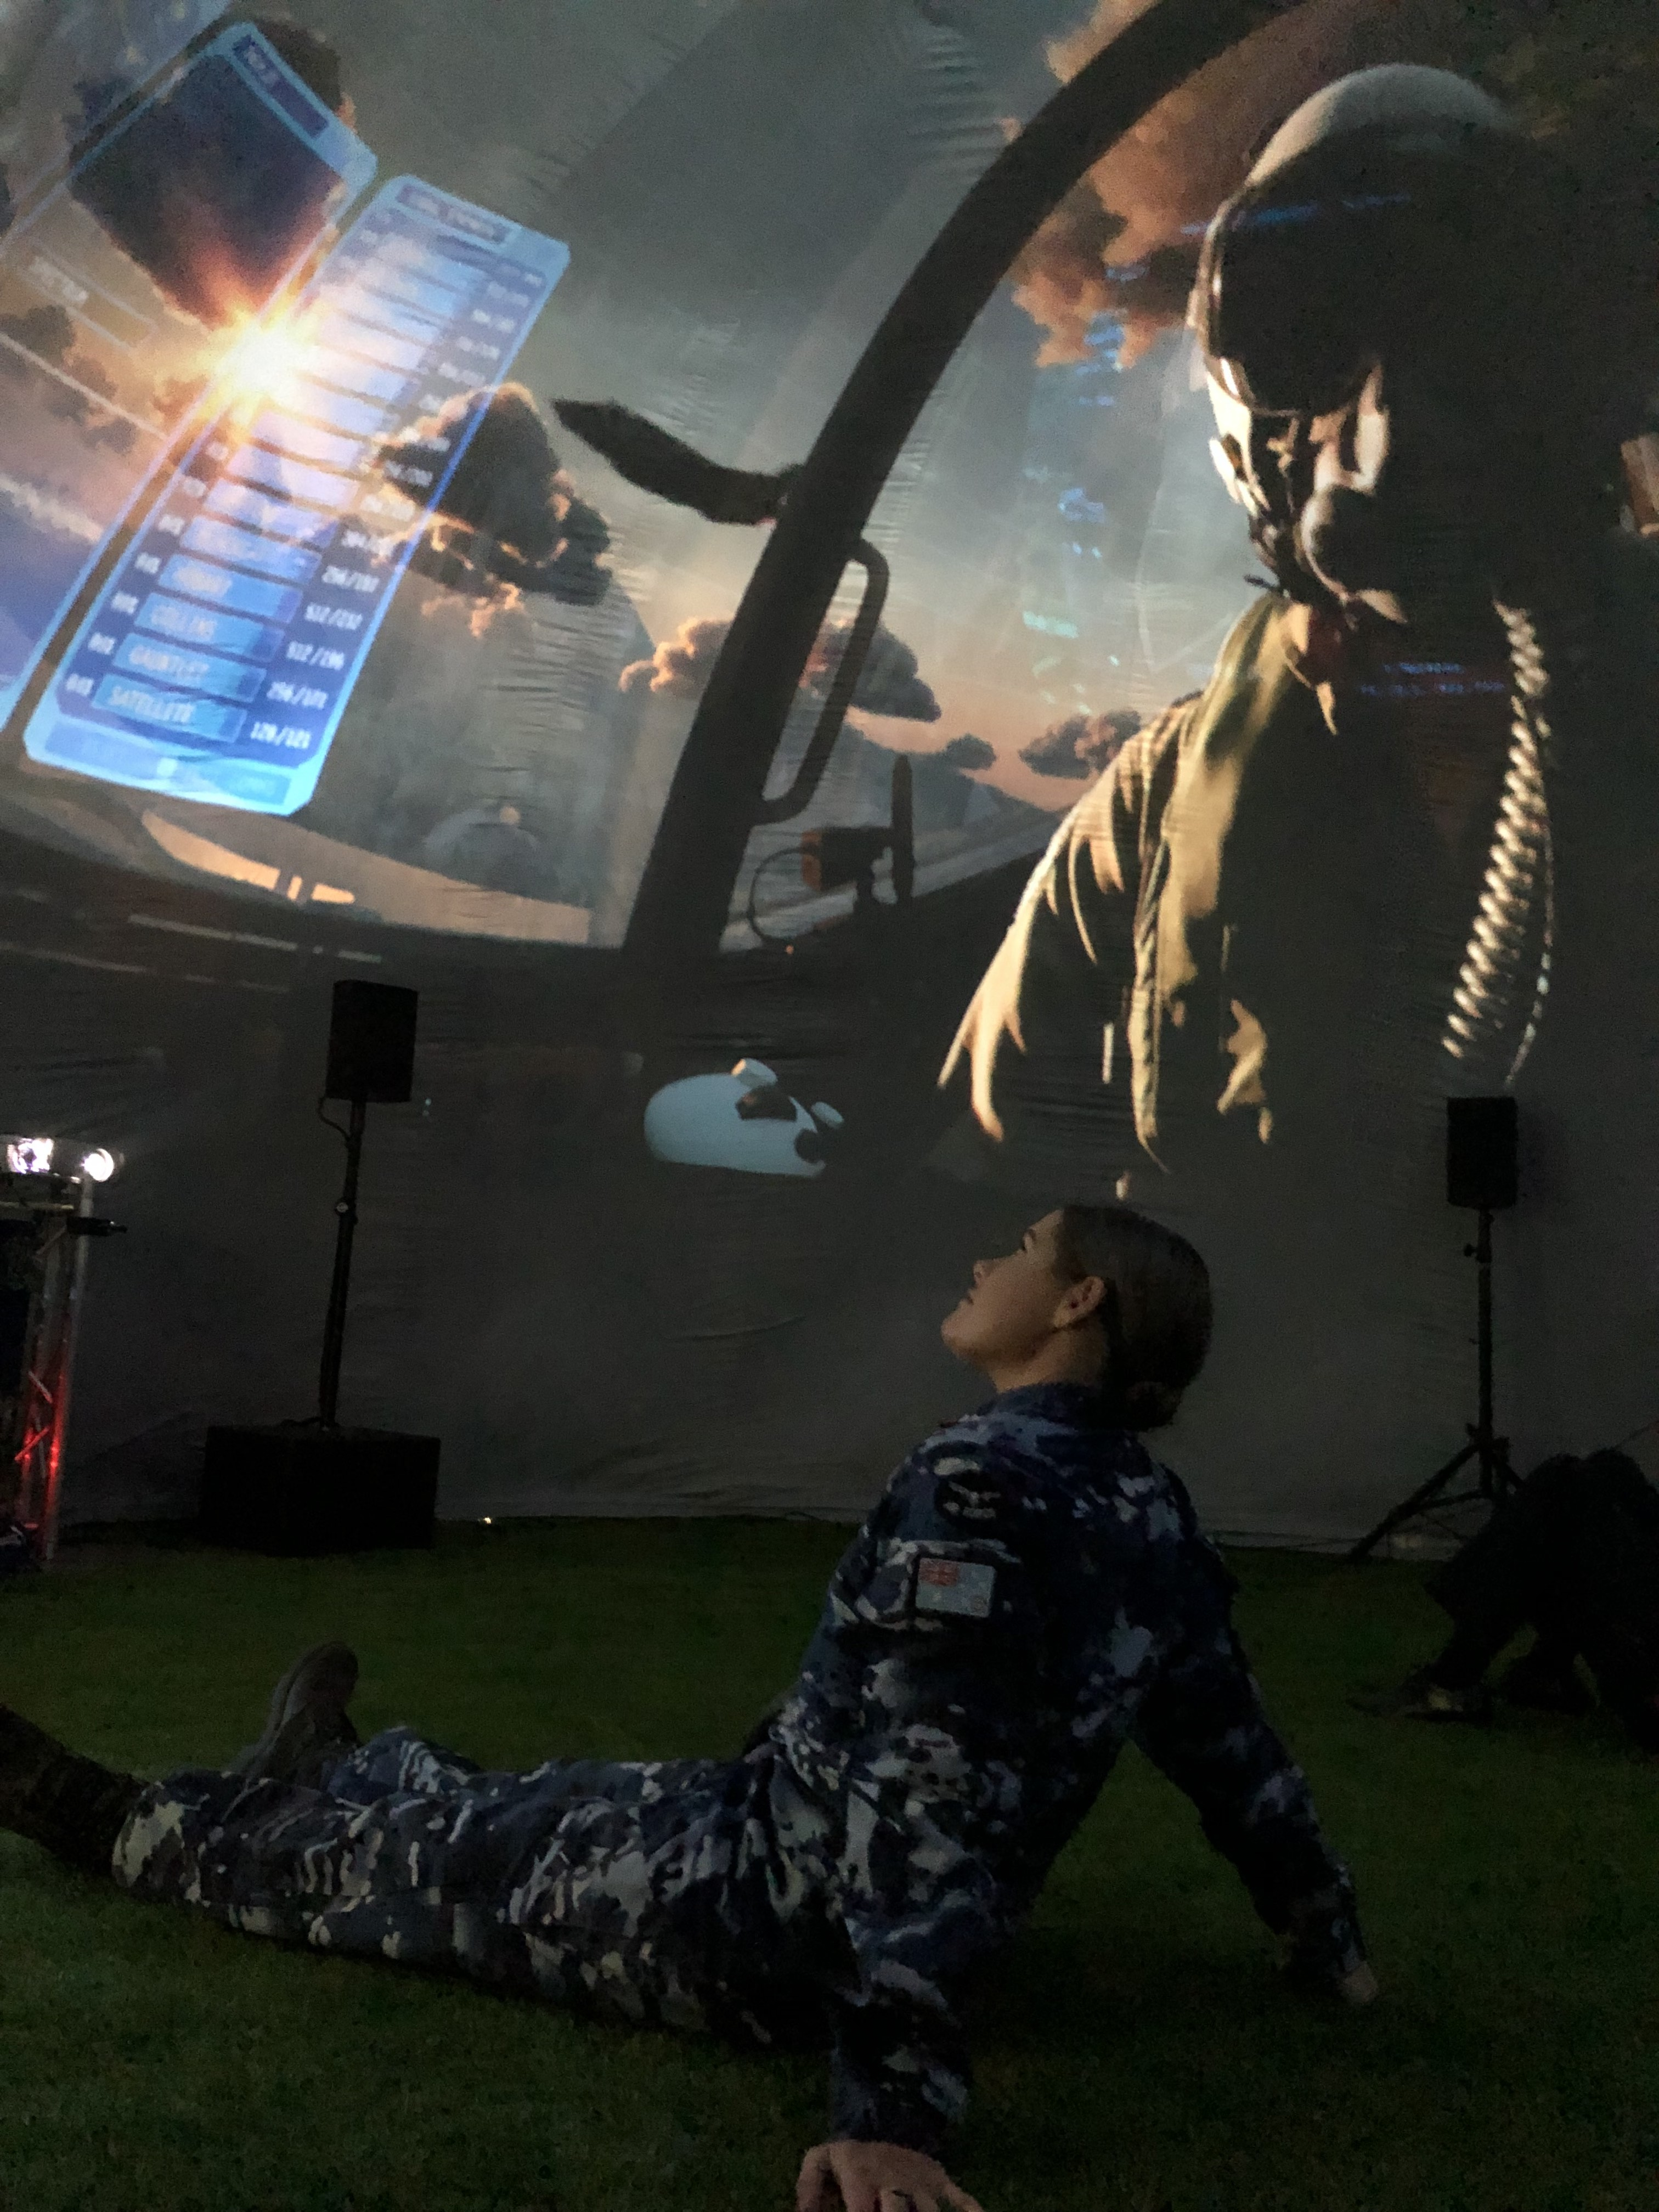 Spinifex Showcases Air Force Of Tomorrow With 360-Degree Dome Projections